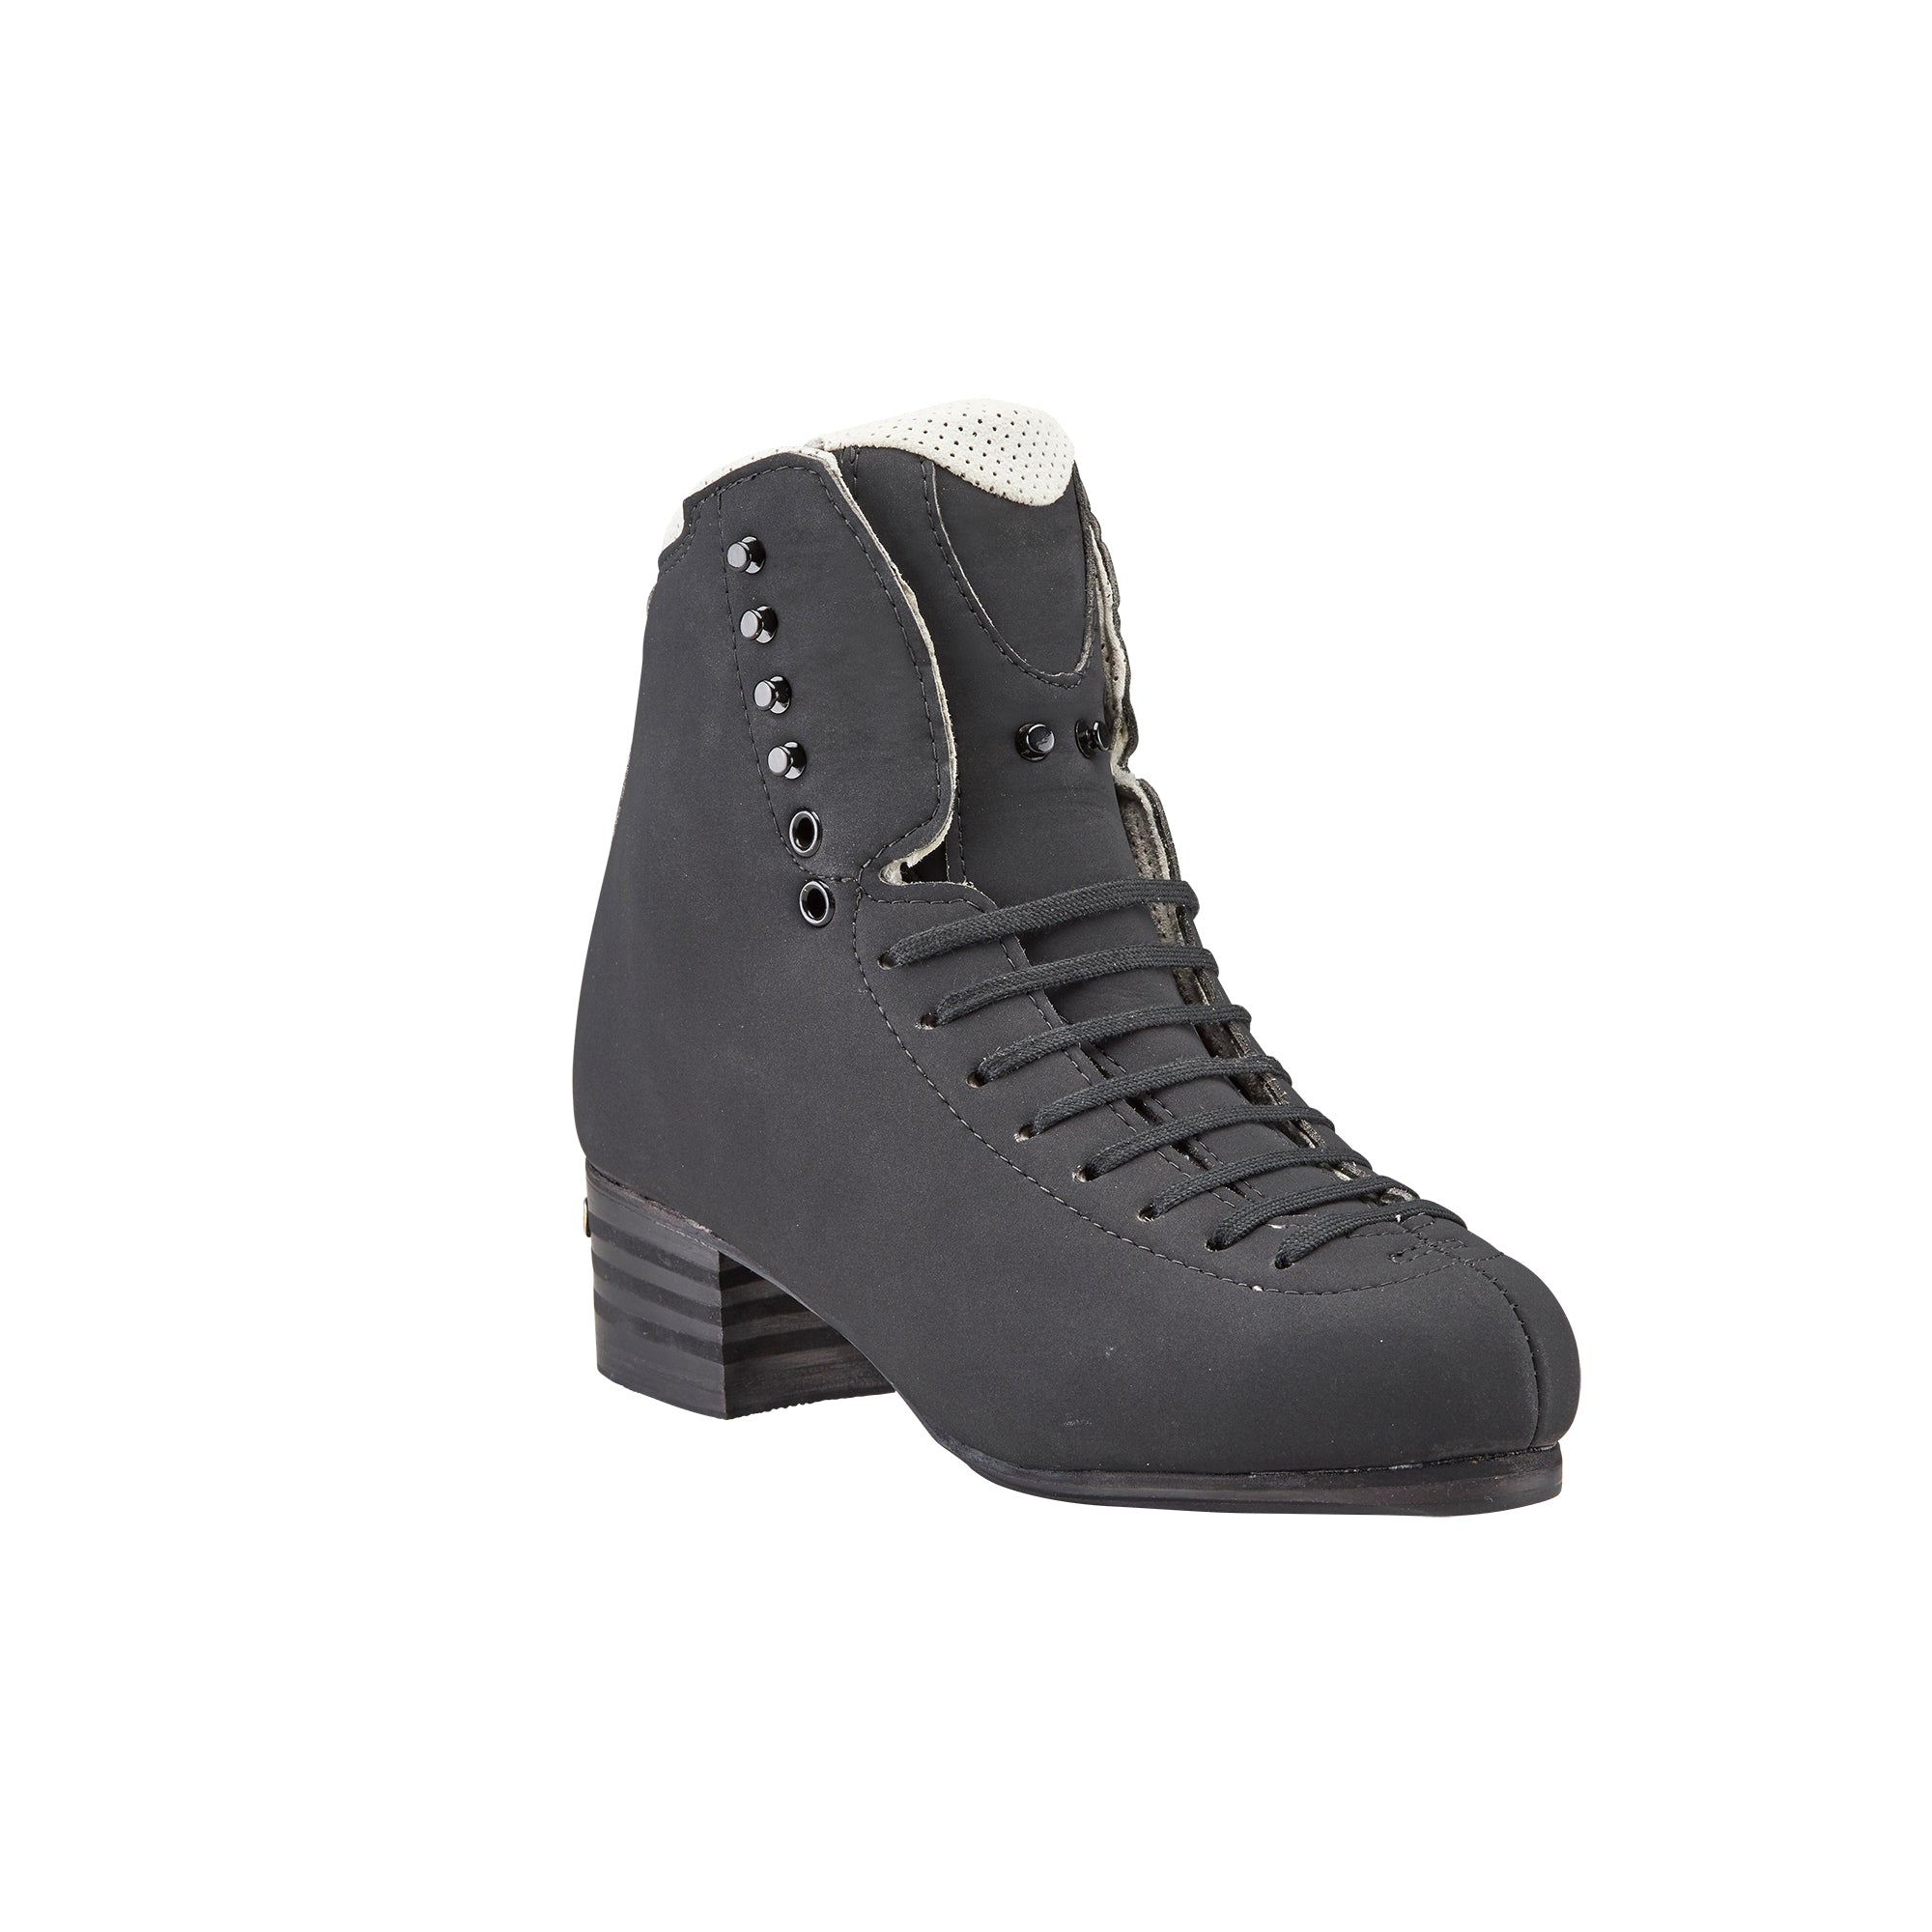 Jackson Supreme 5852 Black Figure Skate Boot